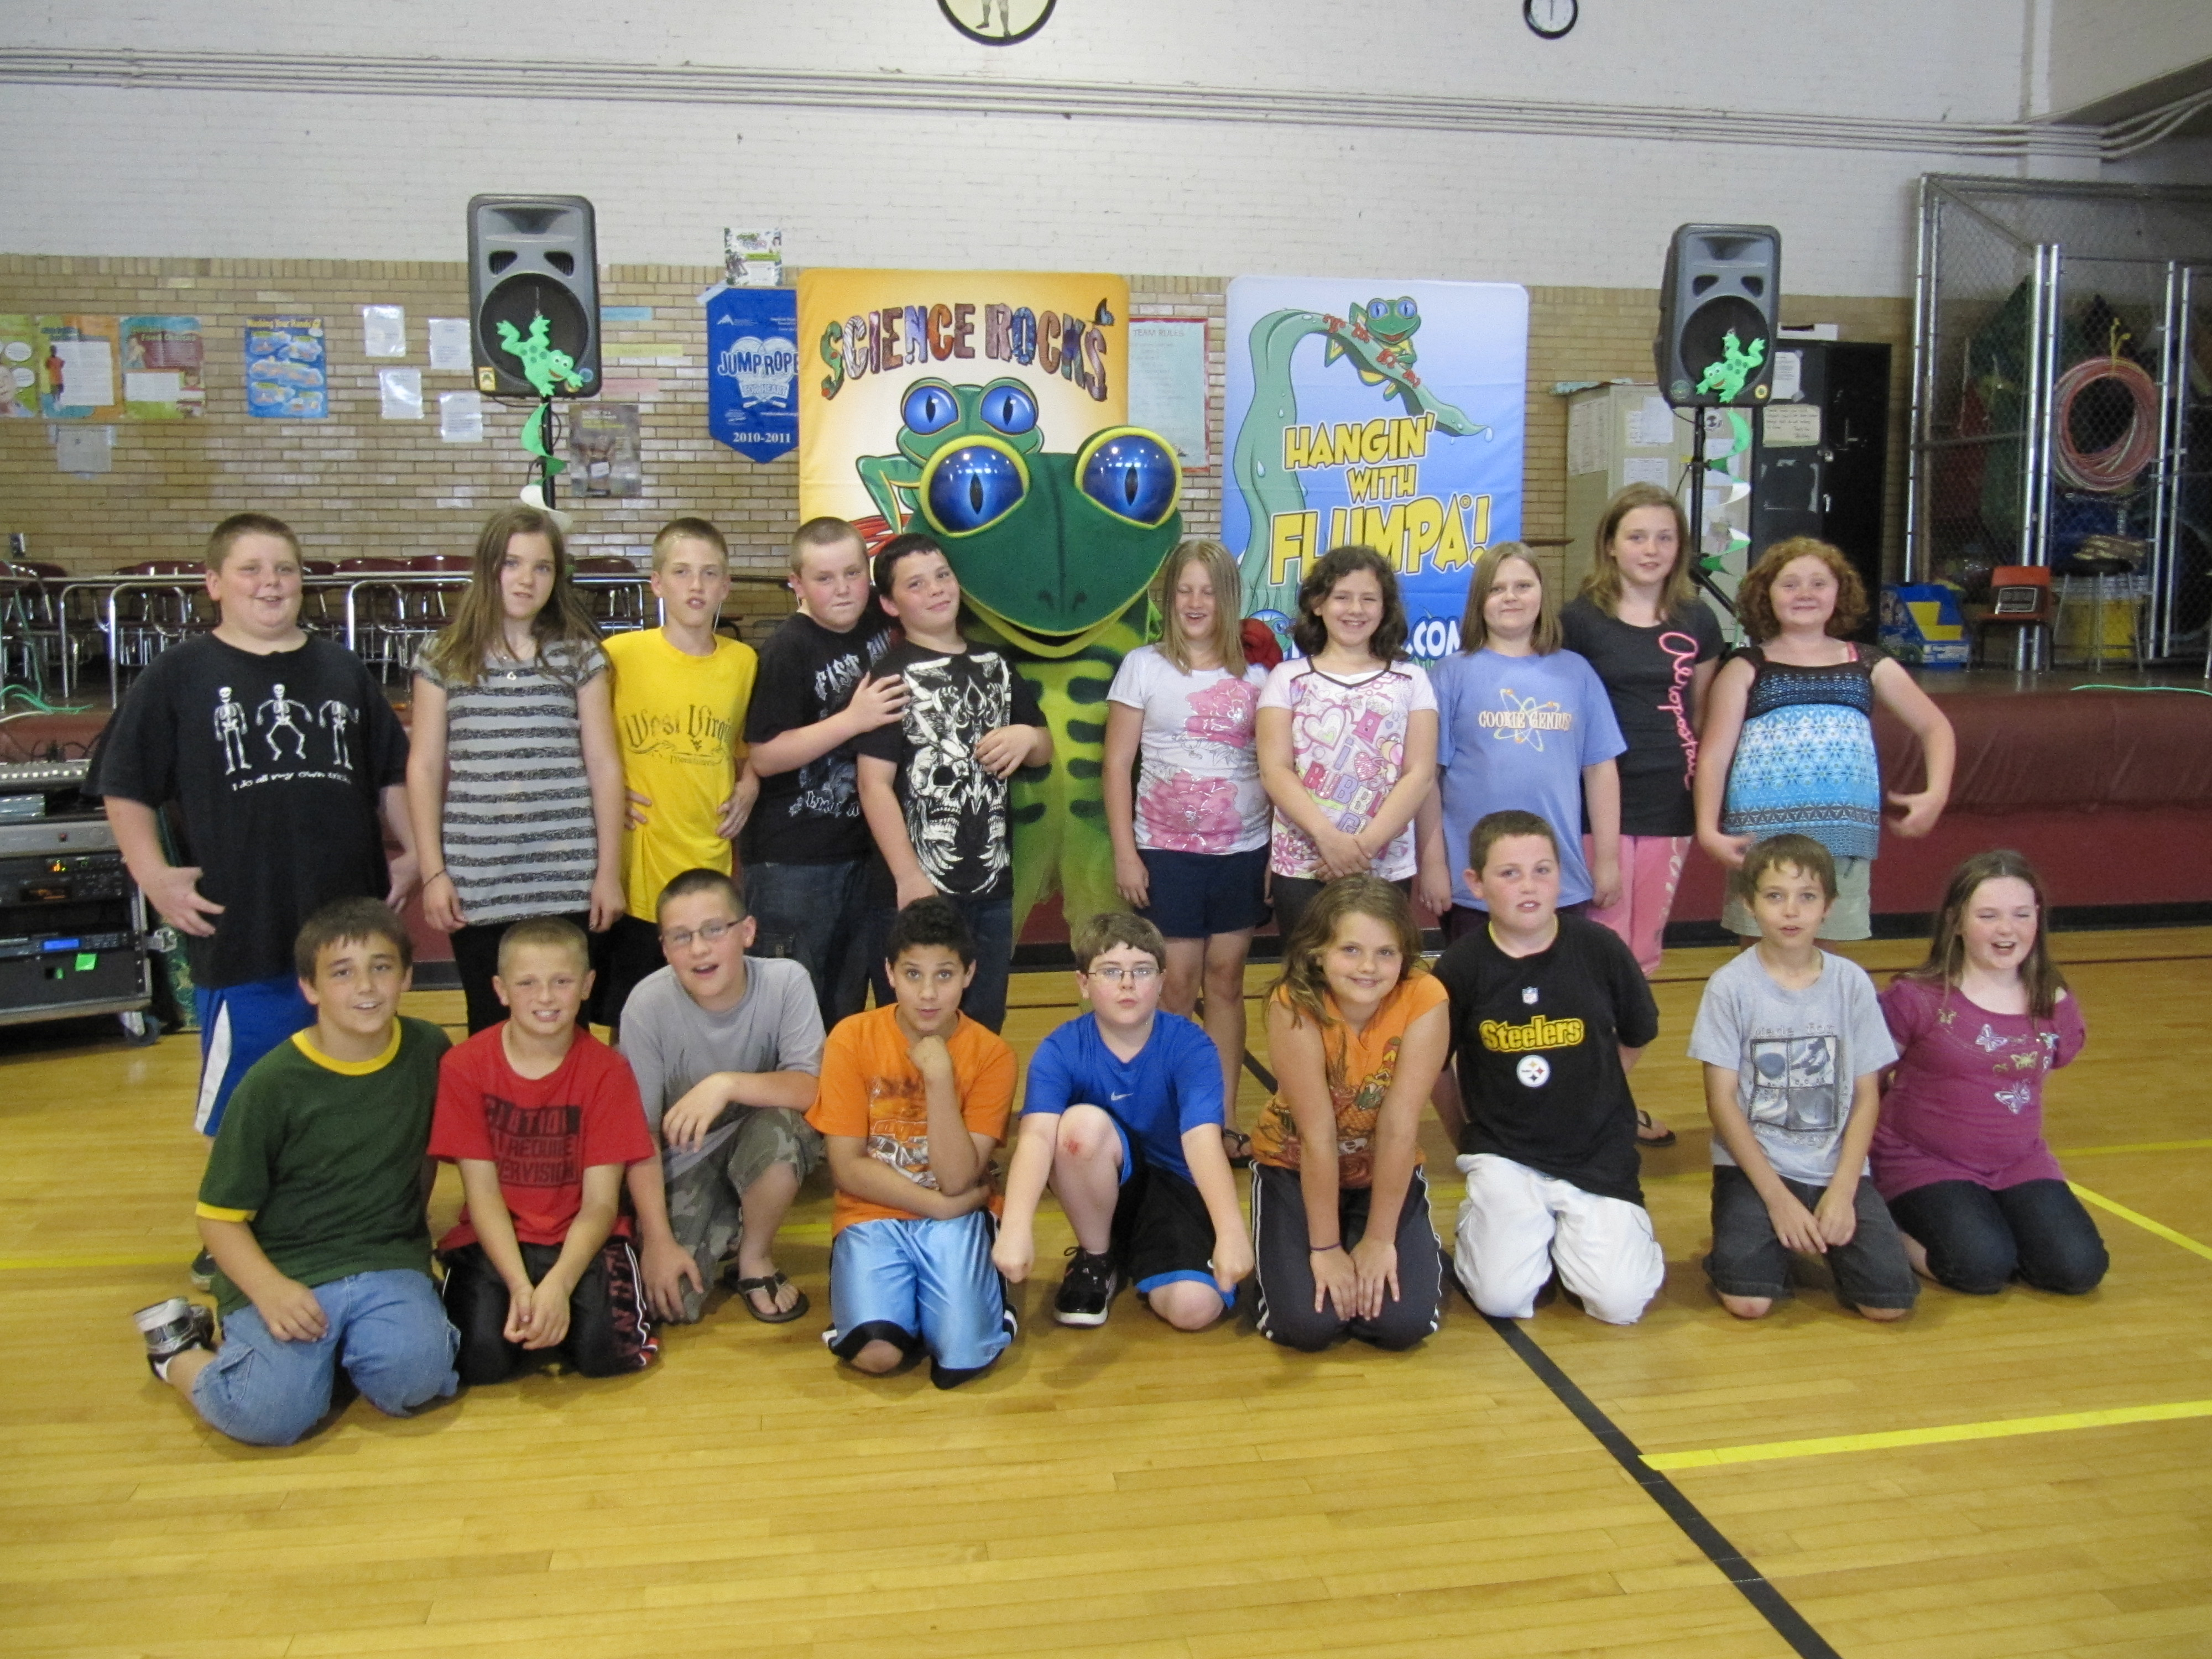 IMG_1574Pineville_School_WV[1]